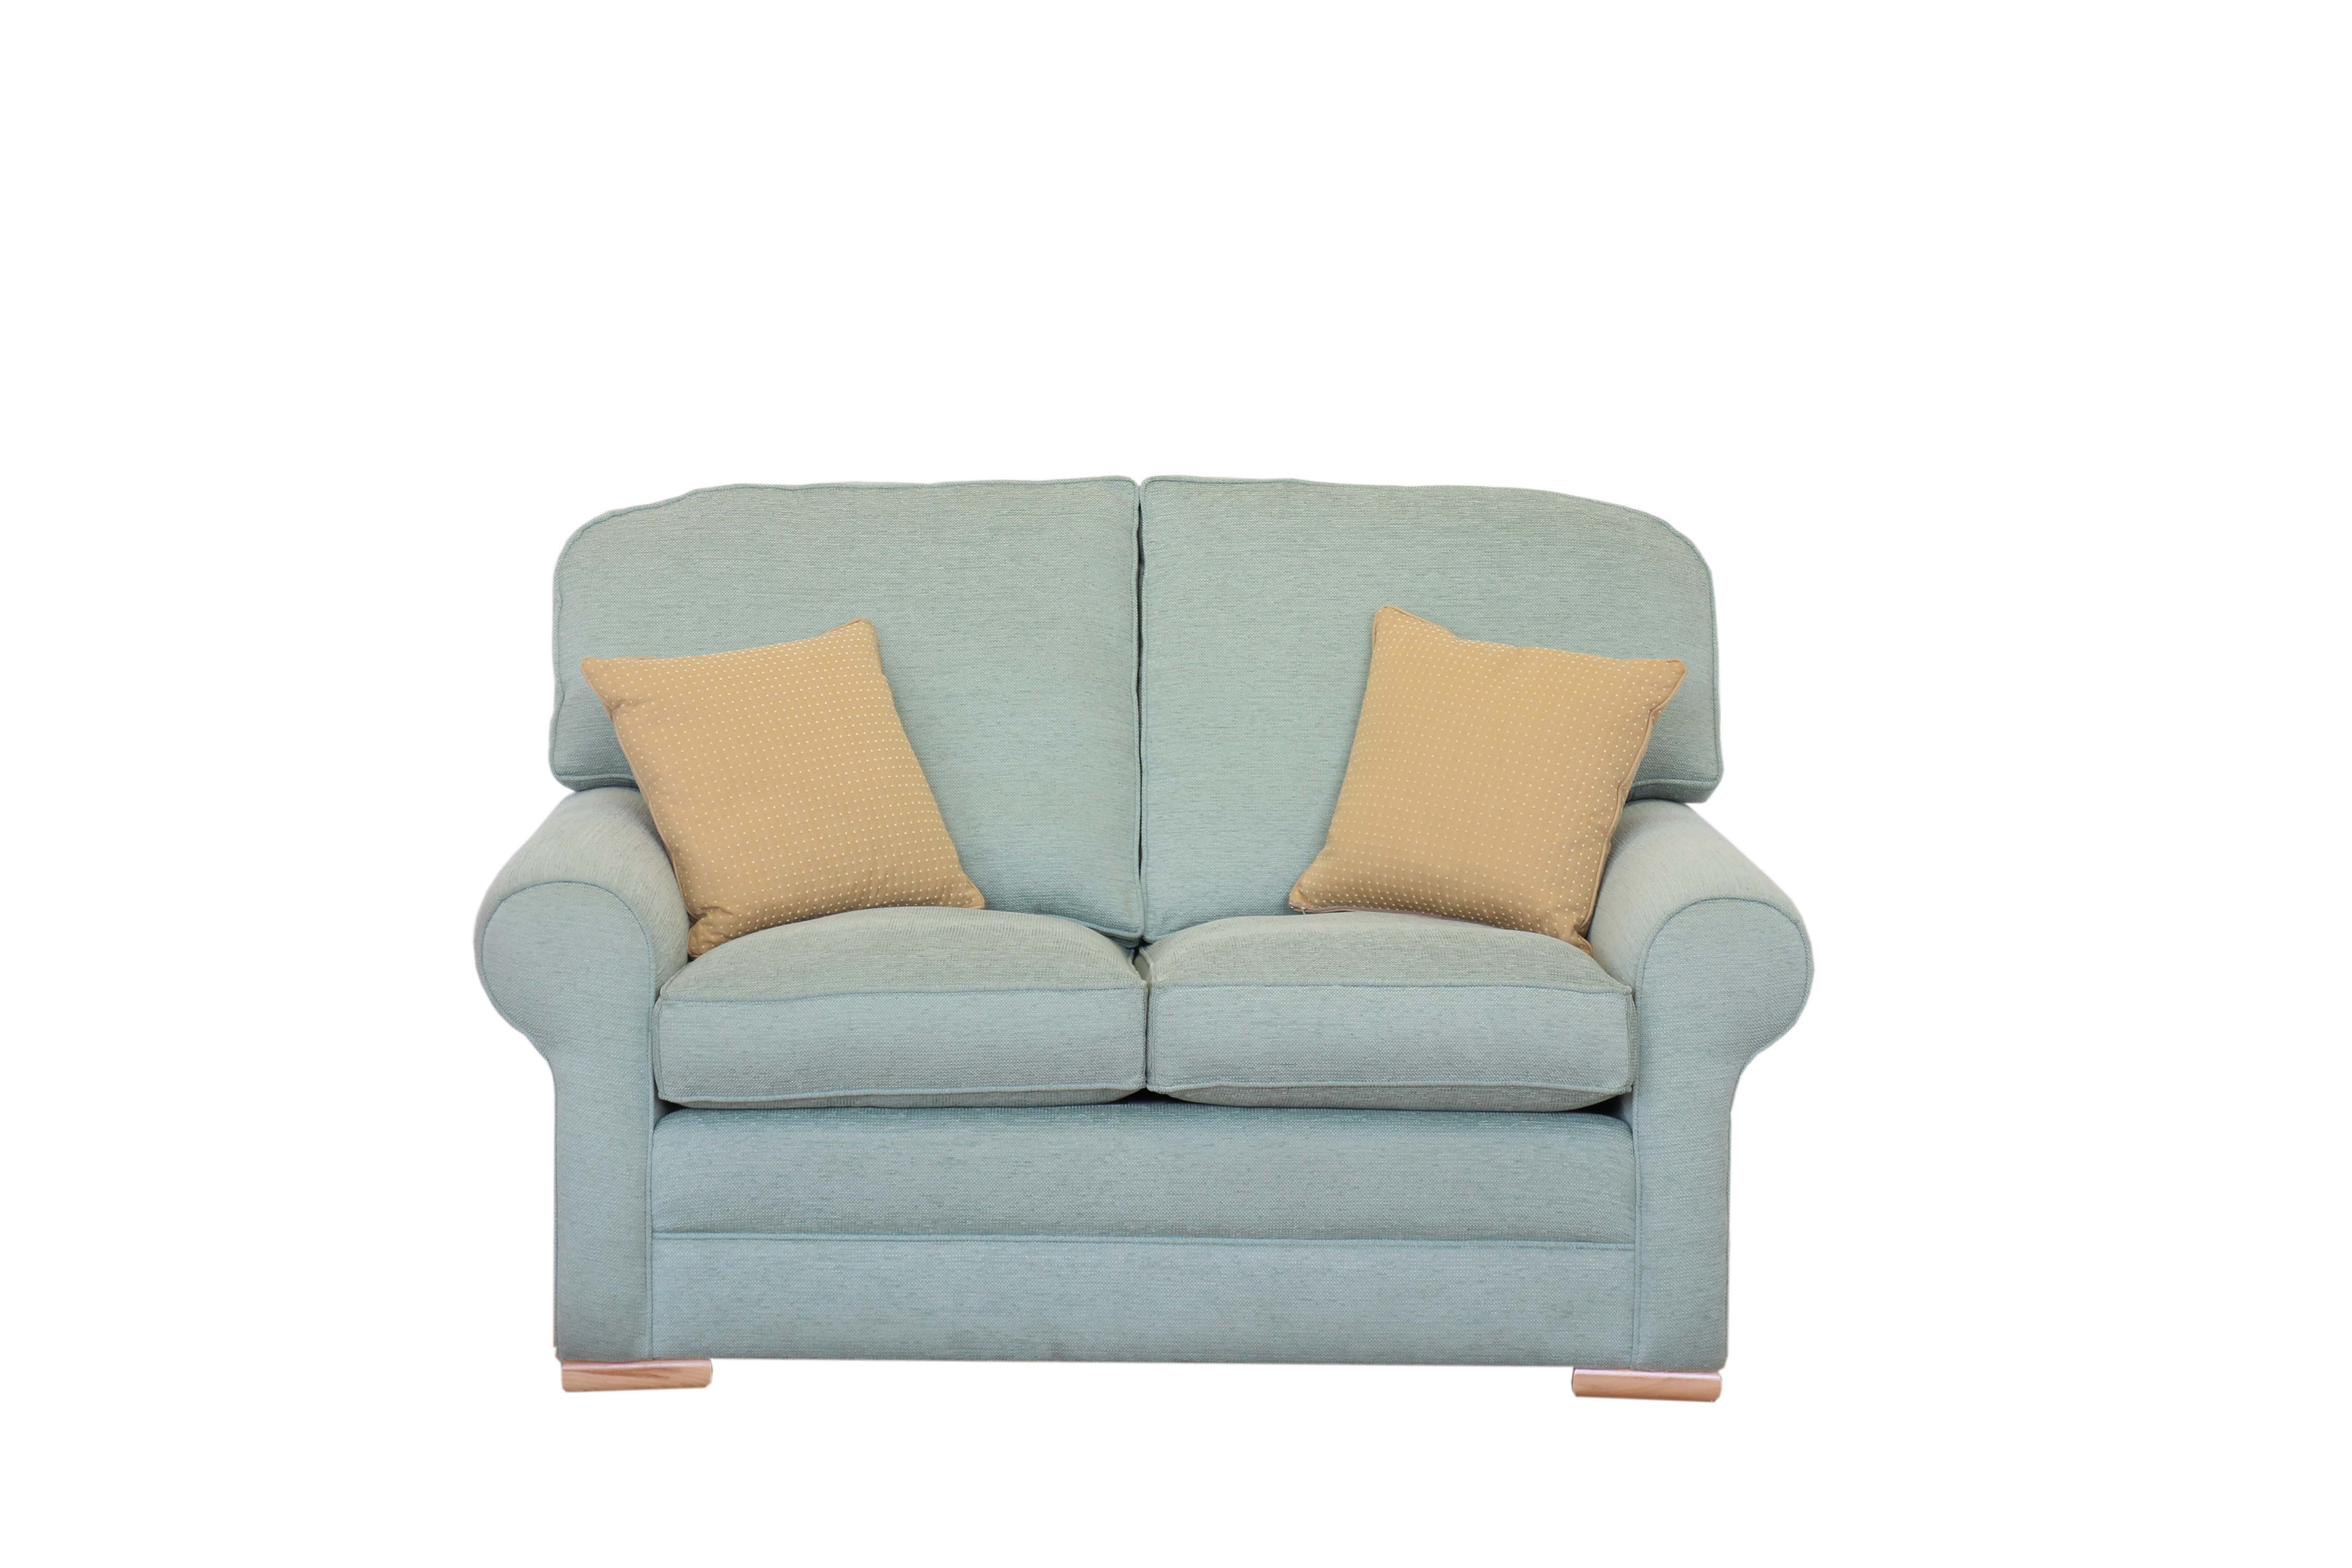 kensington sofa bed reviews large sectional sofas uk new 2 seater tailor made